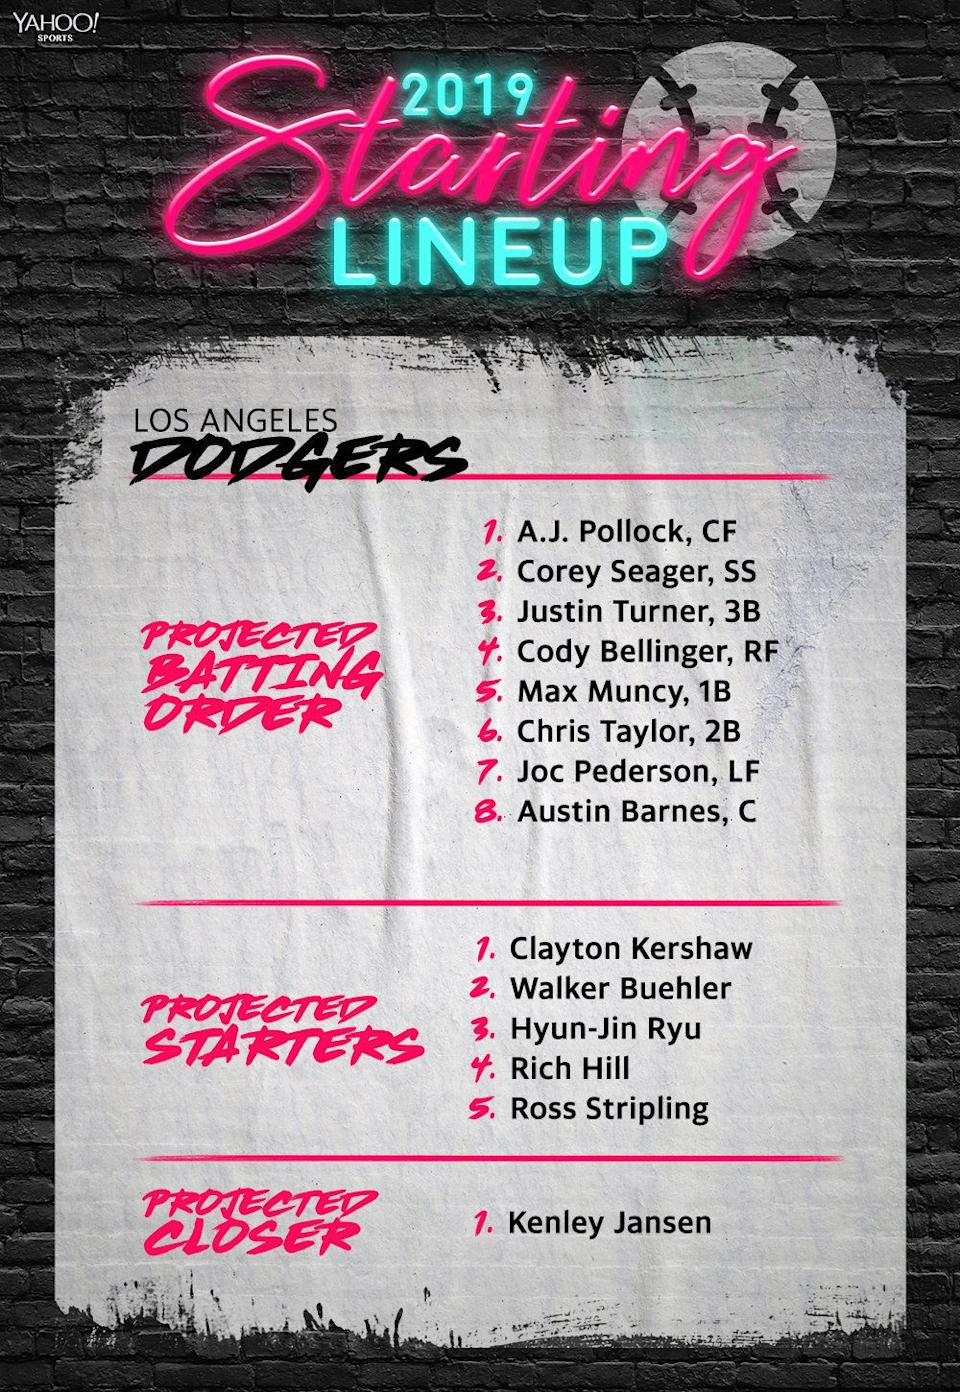 The projected lineup for the 2019 Dodgers. (Yahoo Sports)